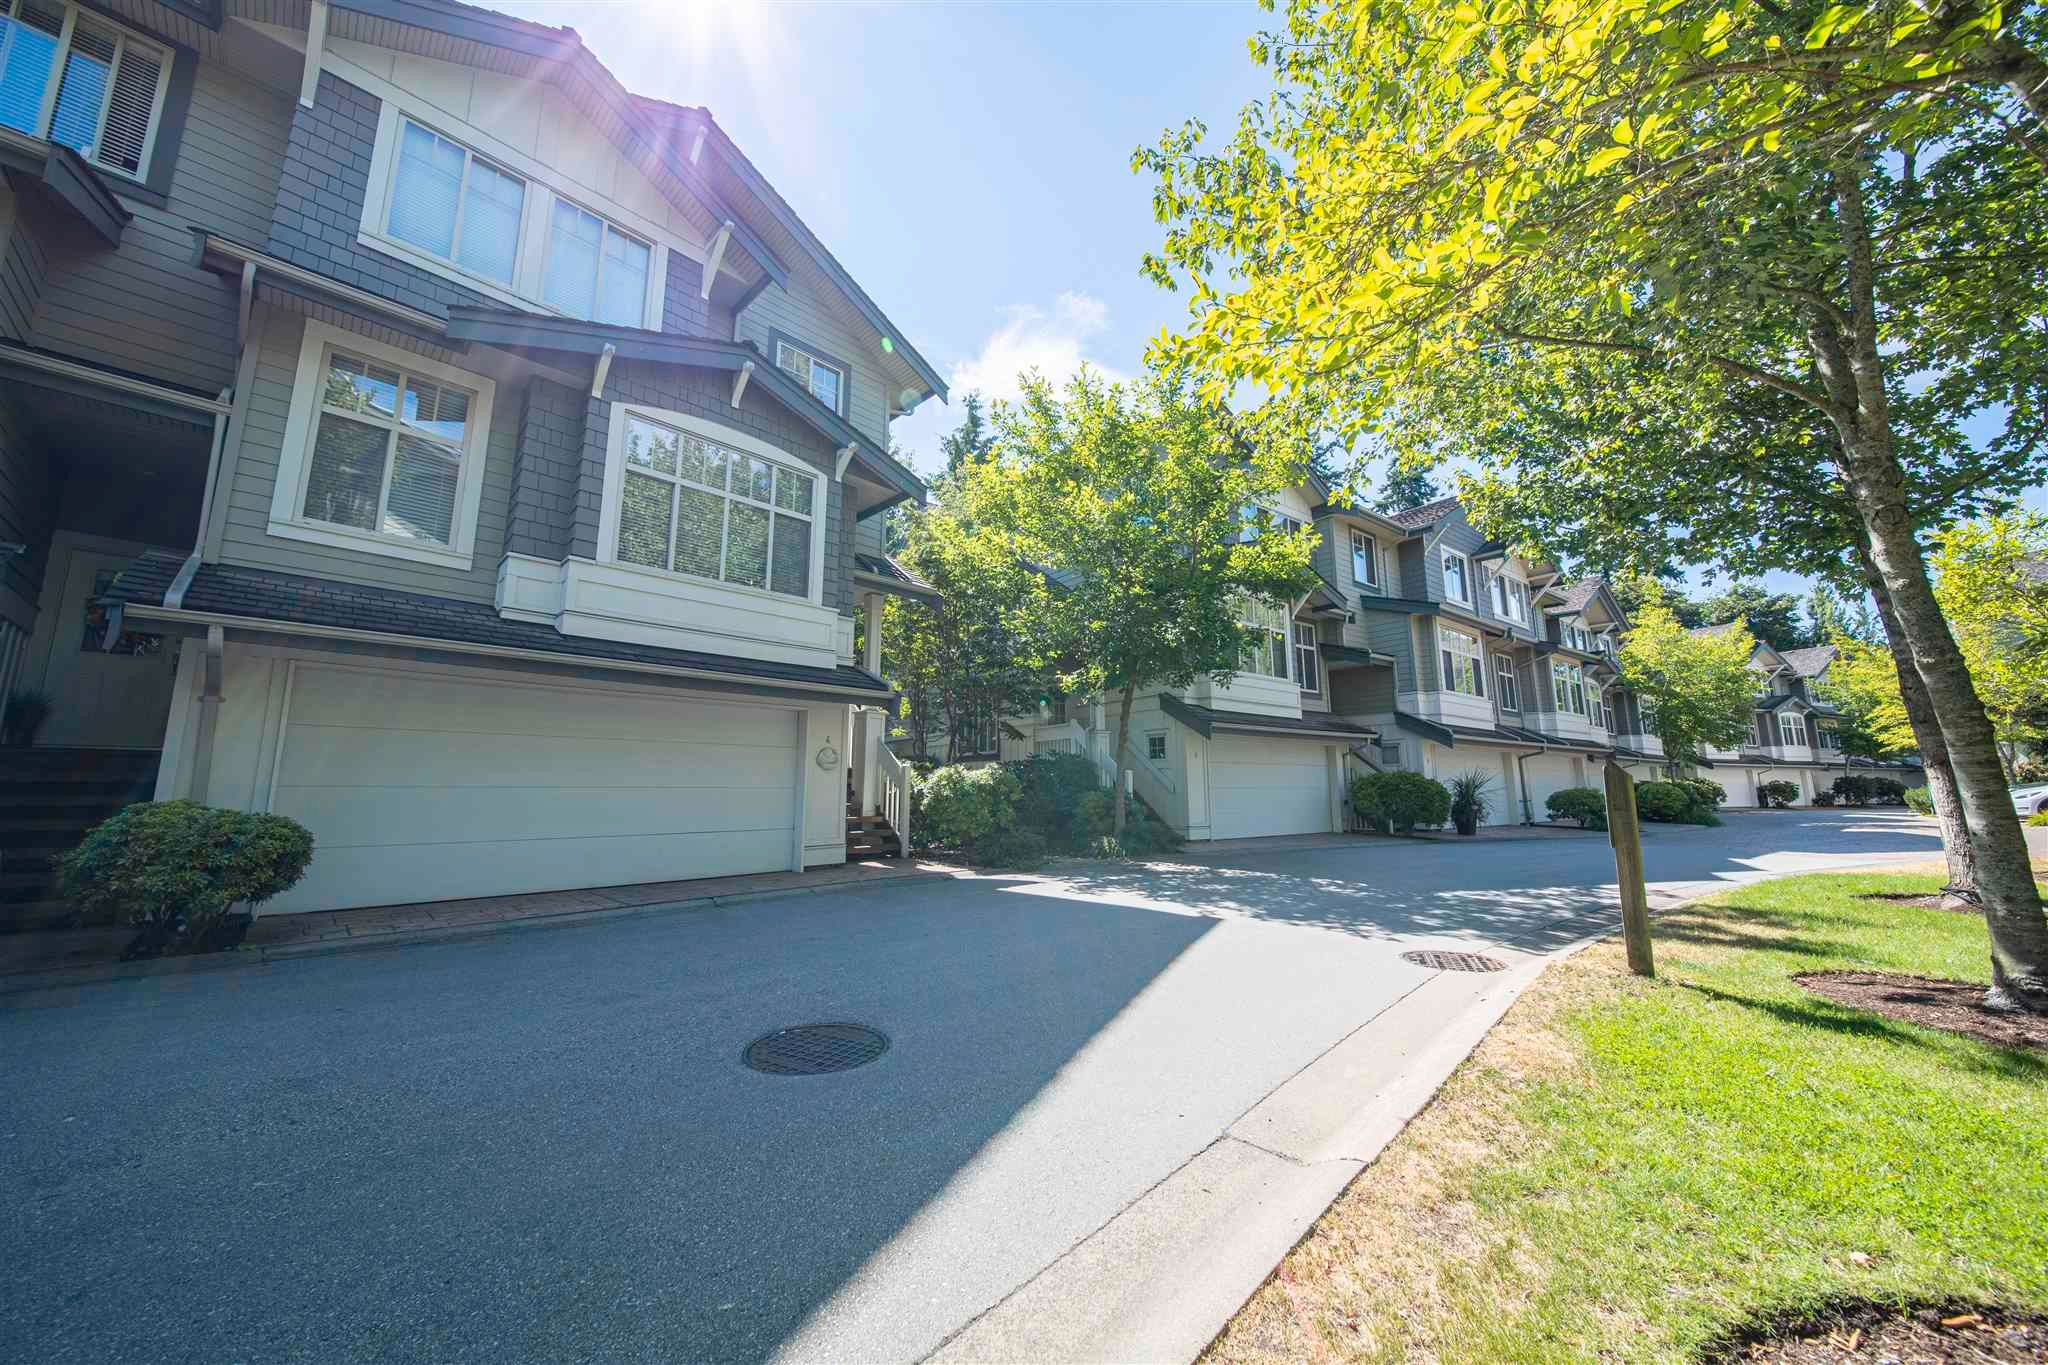 Main Photo: 4 2133 151A Street in Surrey: Sunnyside Park Surrey Townhouse for sale (South Surrey White Rock)  : MLS®# R2604564